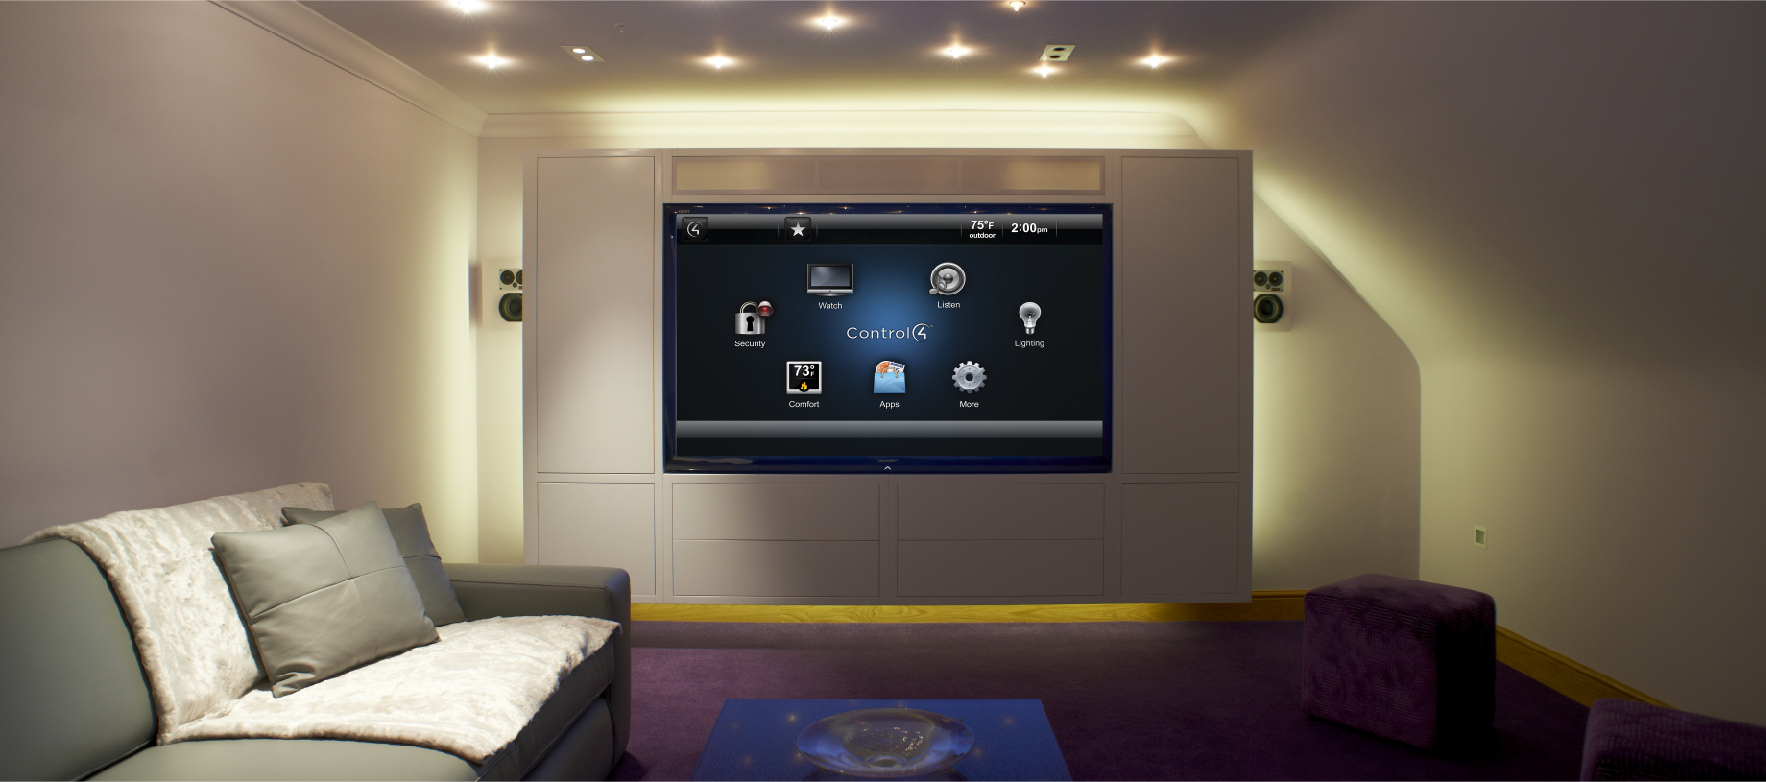 home cinema sur mesure malassise control4